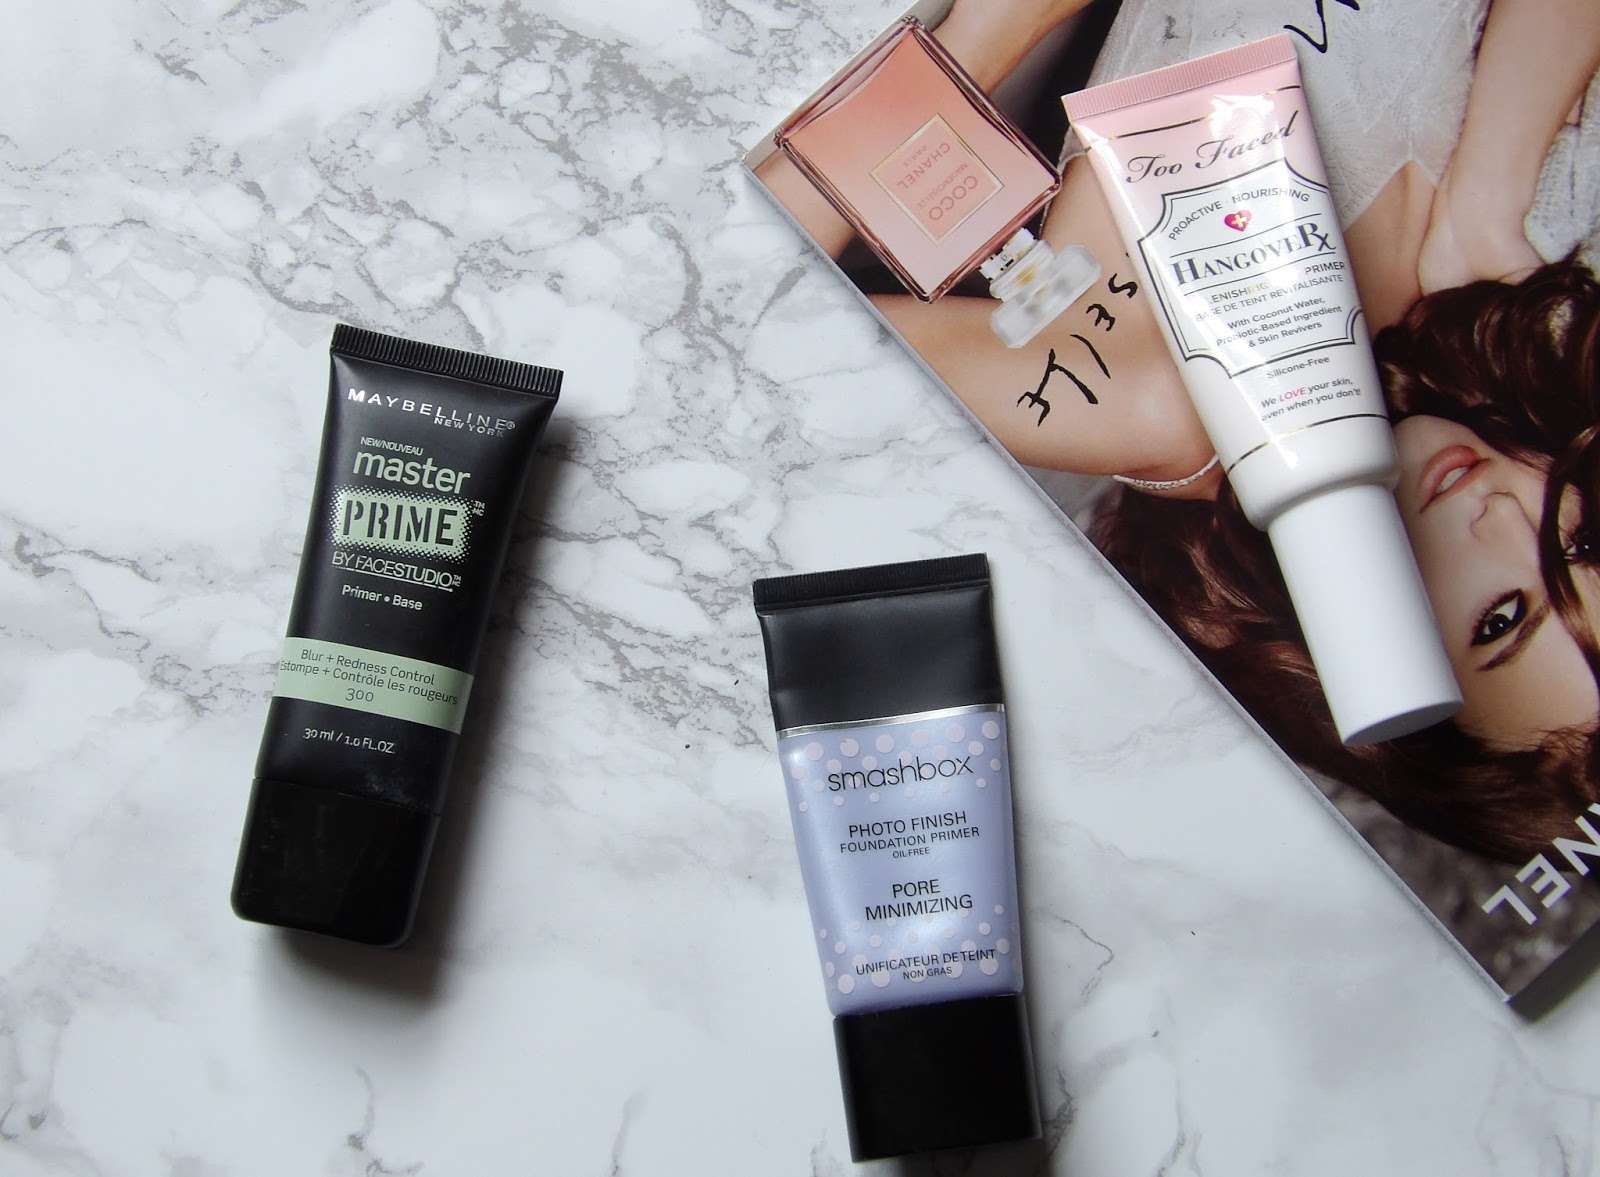 MY TOP 3 FACE PRIMERS